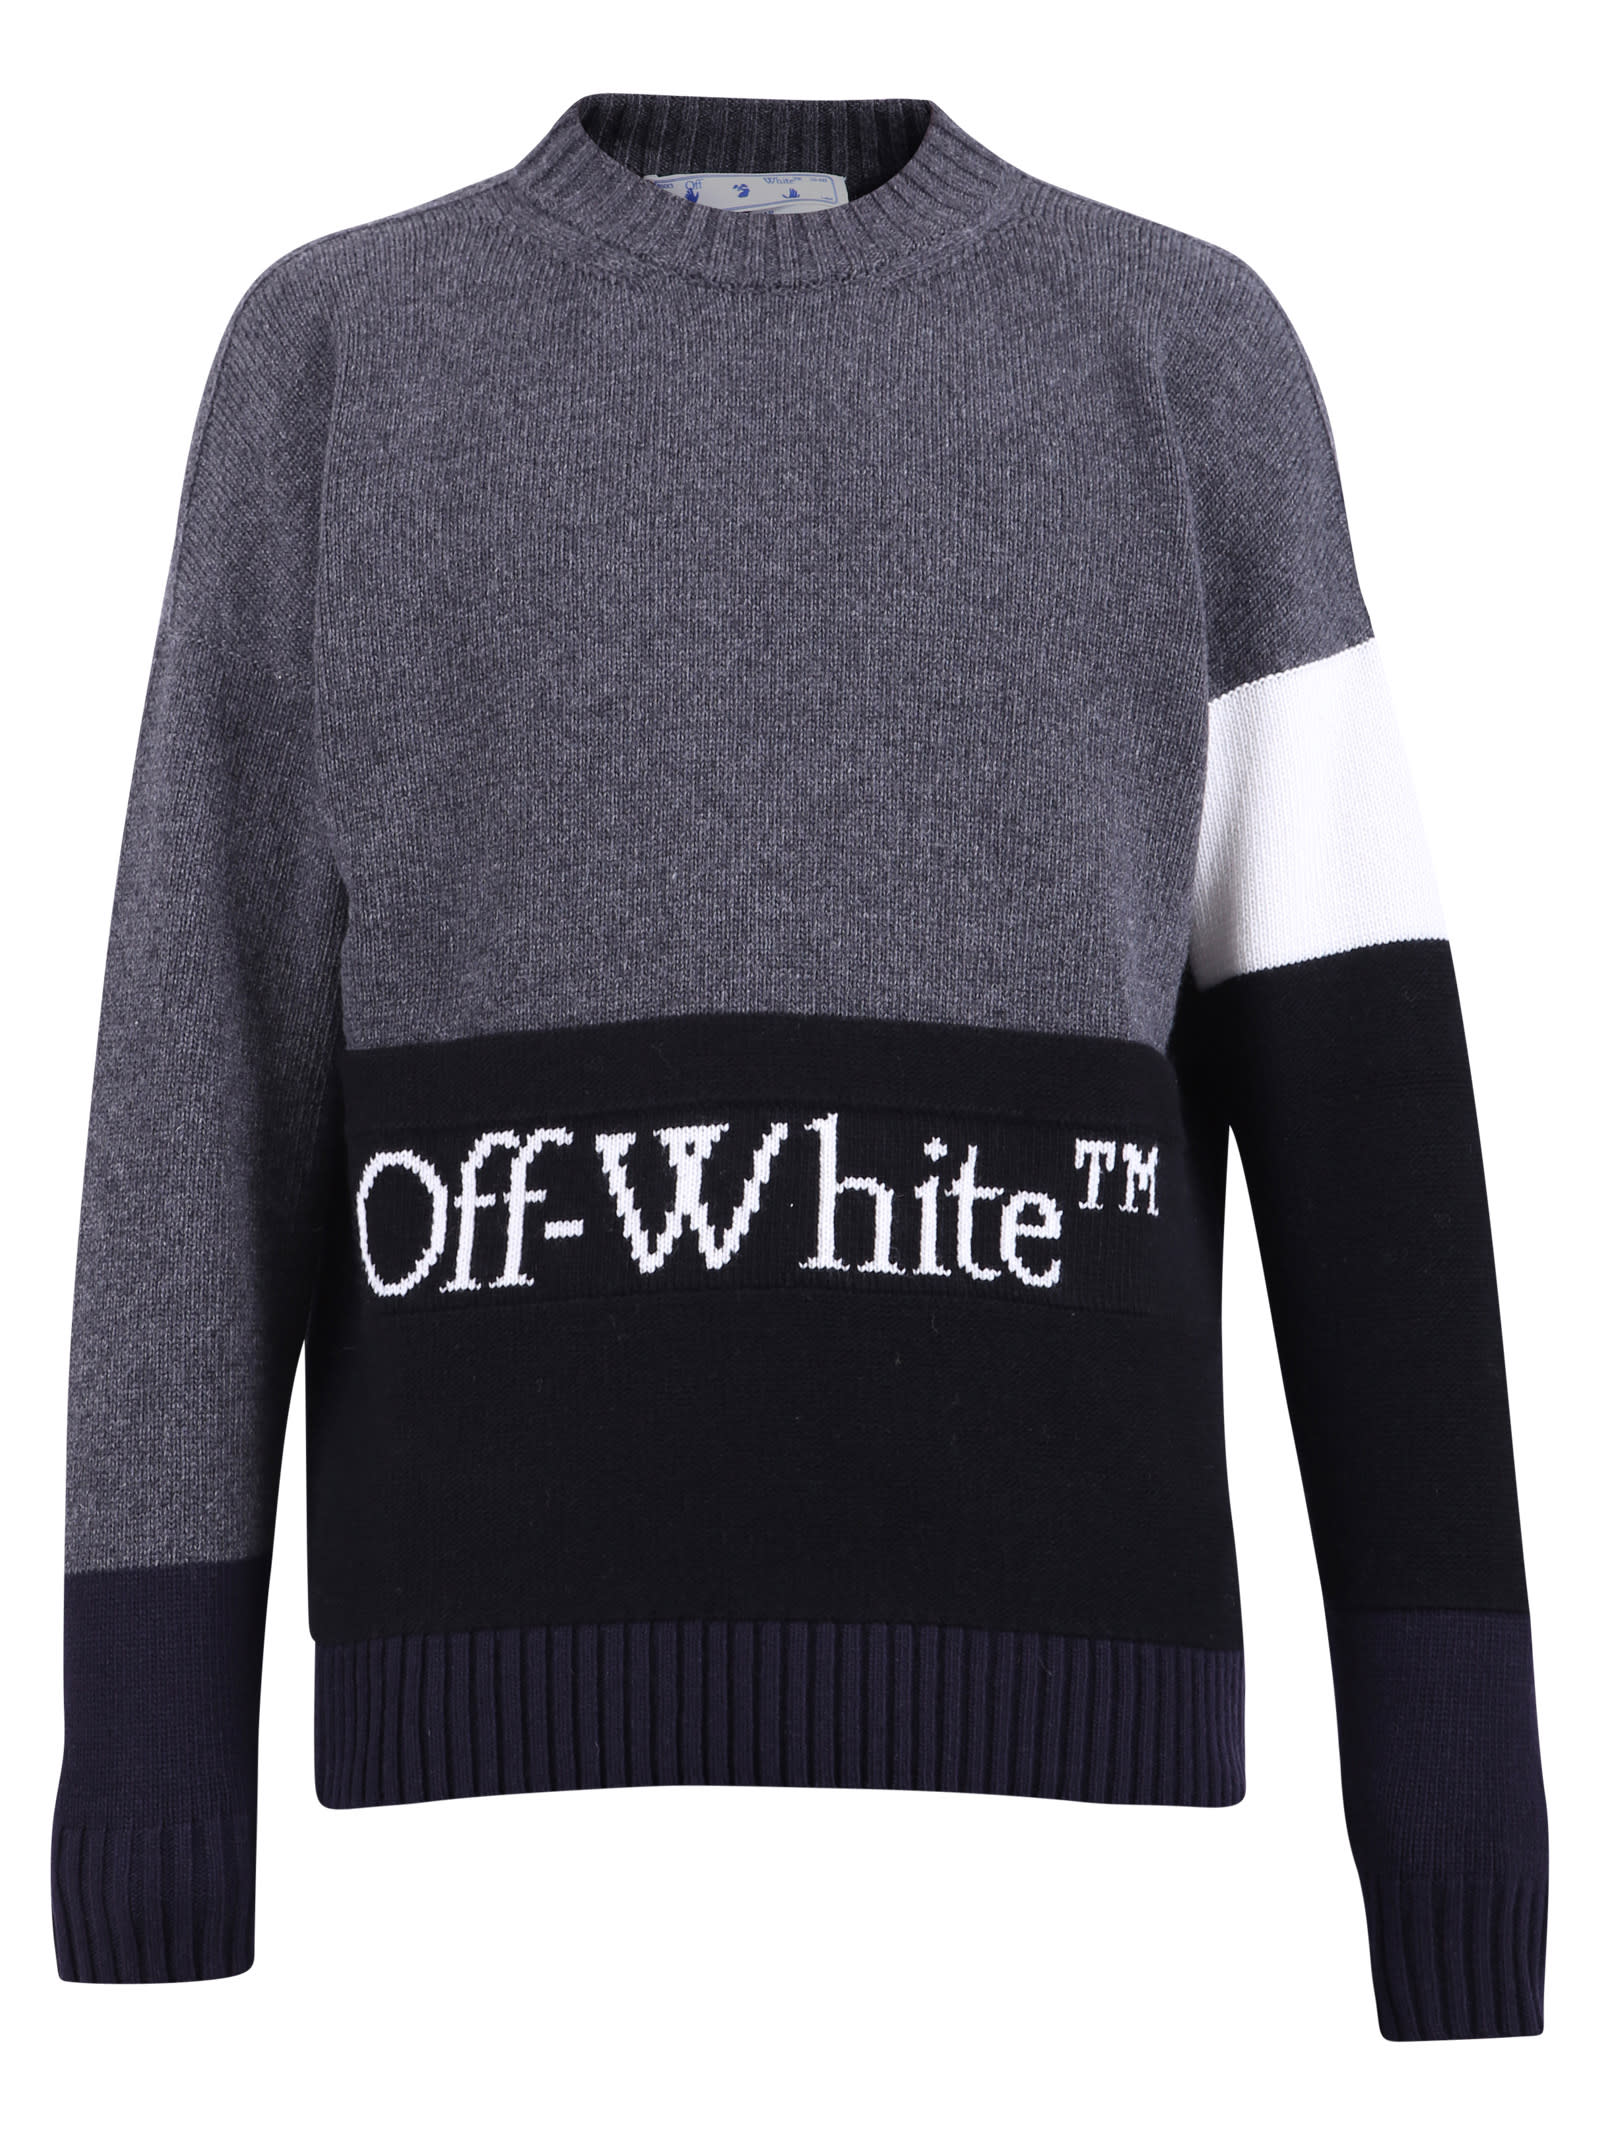 Off-White Wools BRANDED SWEATER